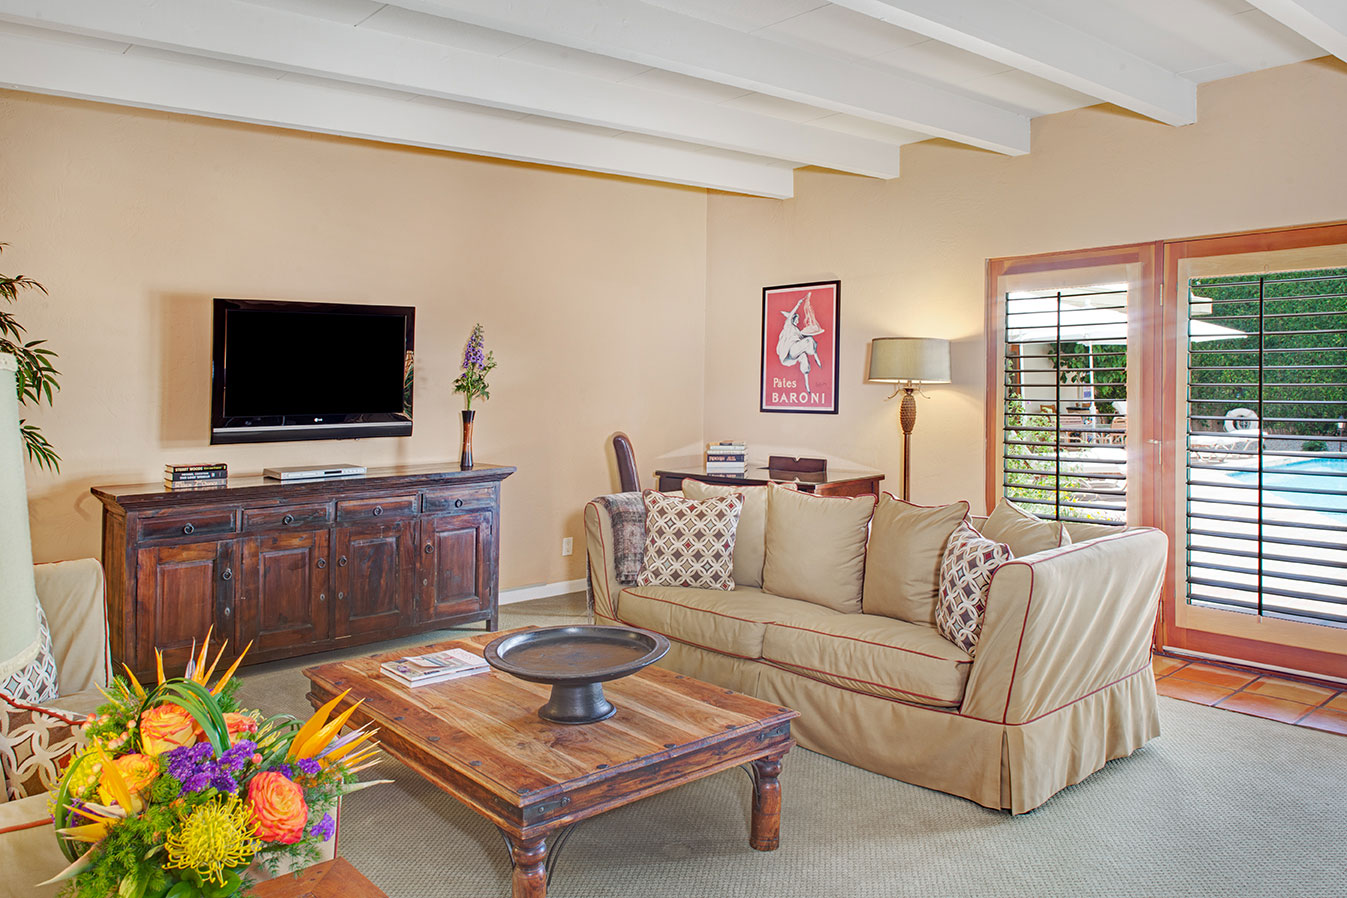 Grand Deluxe Suite living room in daytime at The Hacienda Gay Resort